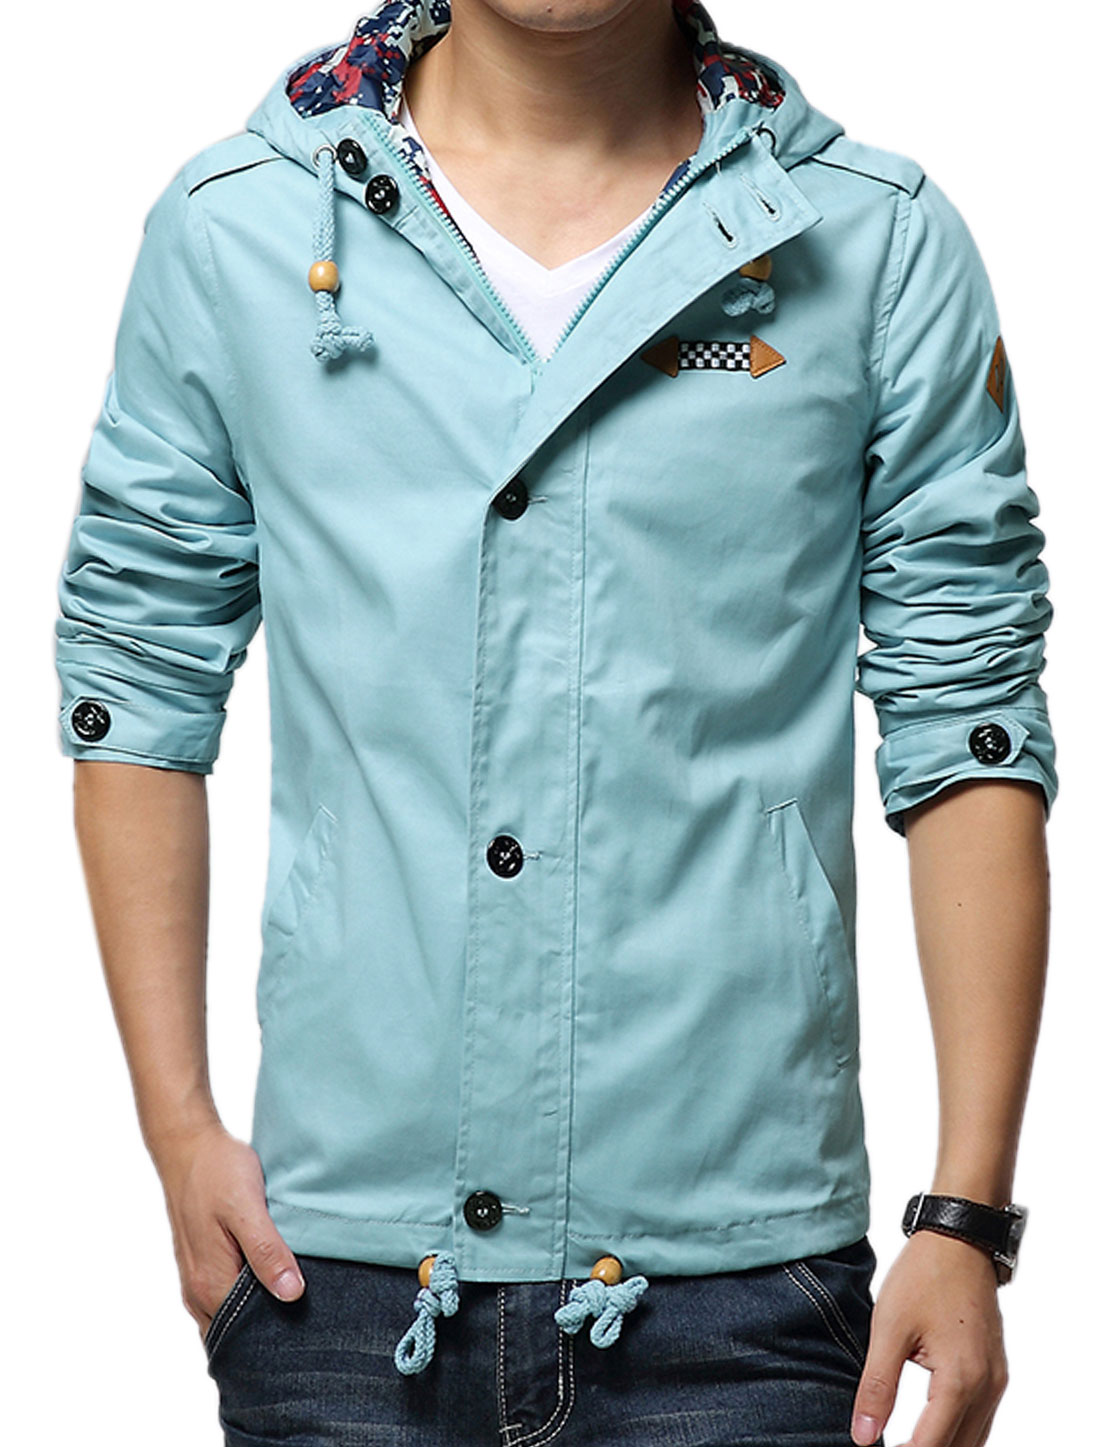 Men Sky Blue Zip Up Button Closure Button-tab Epaulets Drawstring Hooded Jacket S